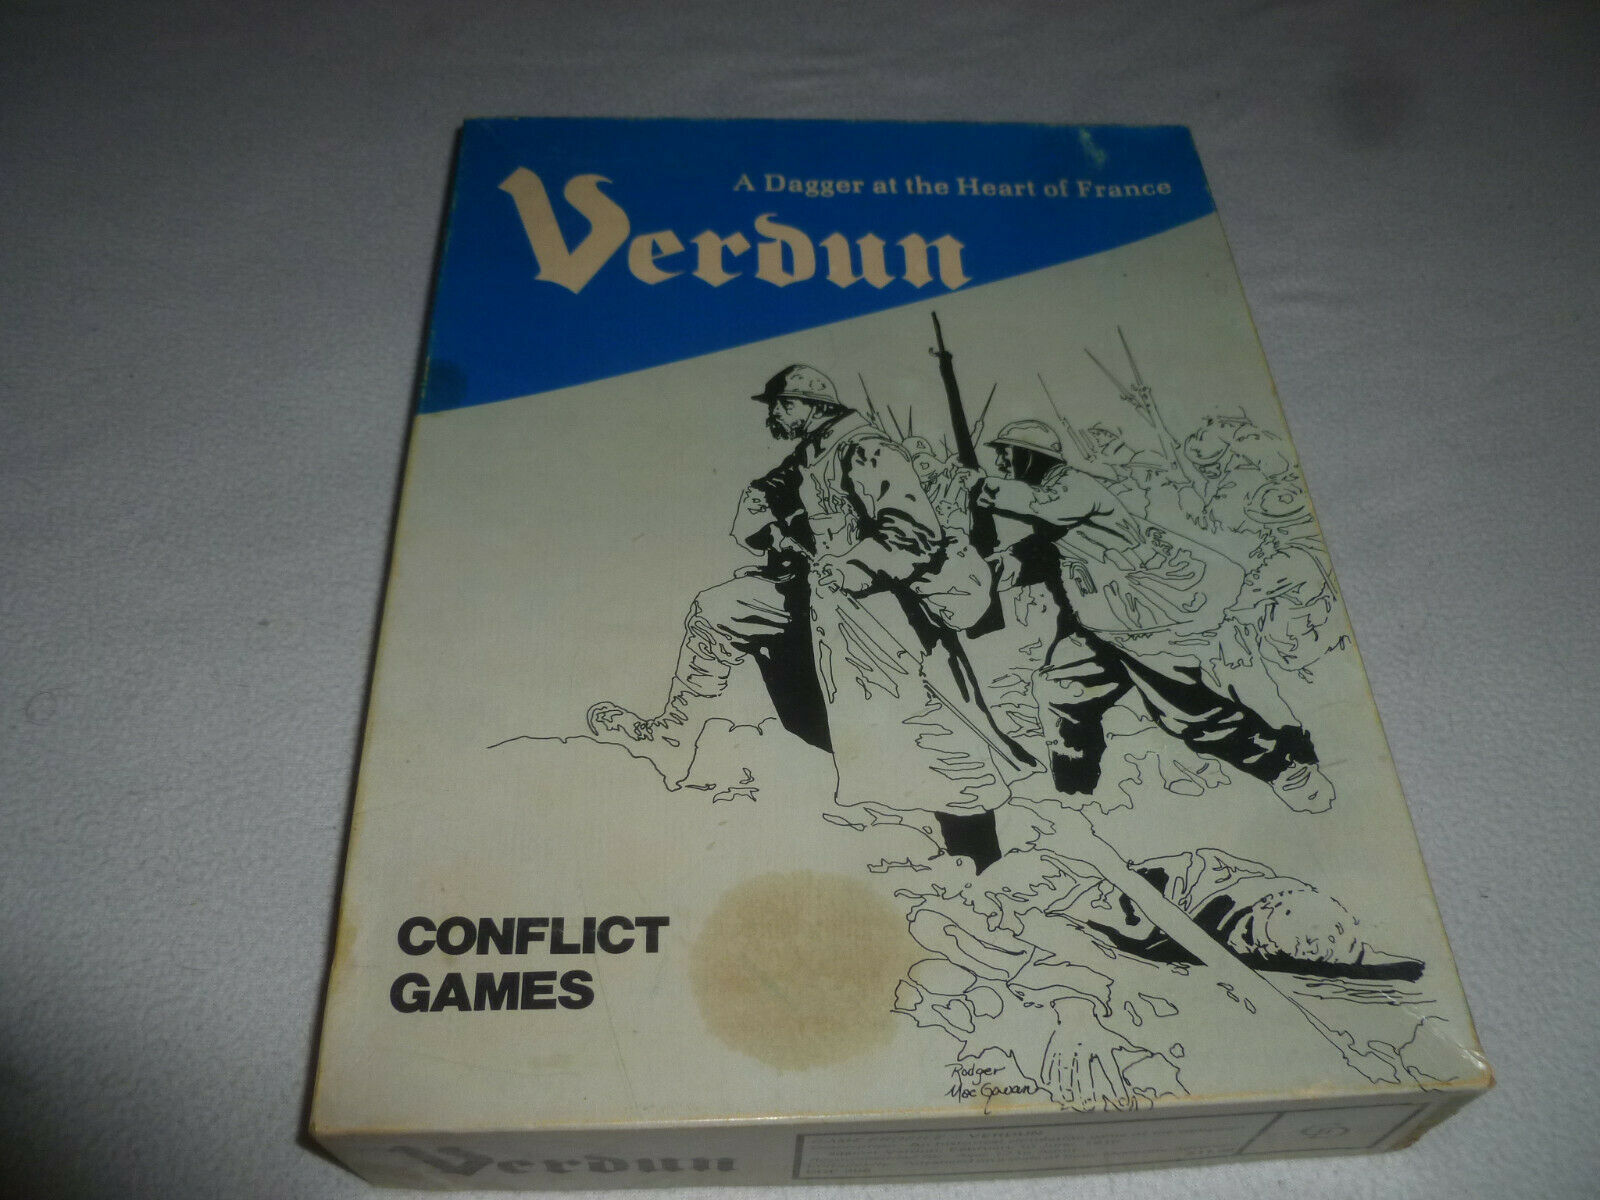 BOARD GAME VERDUN CONFLICT GAMES VINTAGE PUNCHED A DAGGER AT THE HEART OF FRANCE